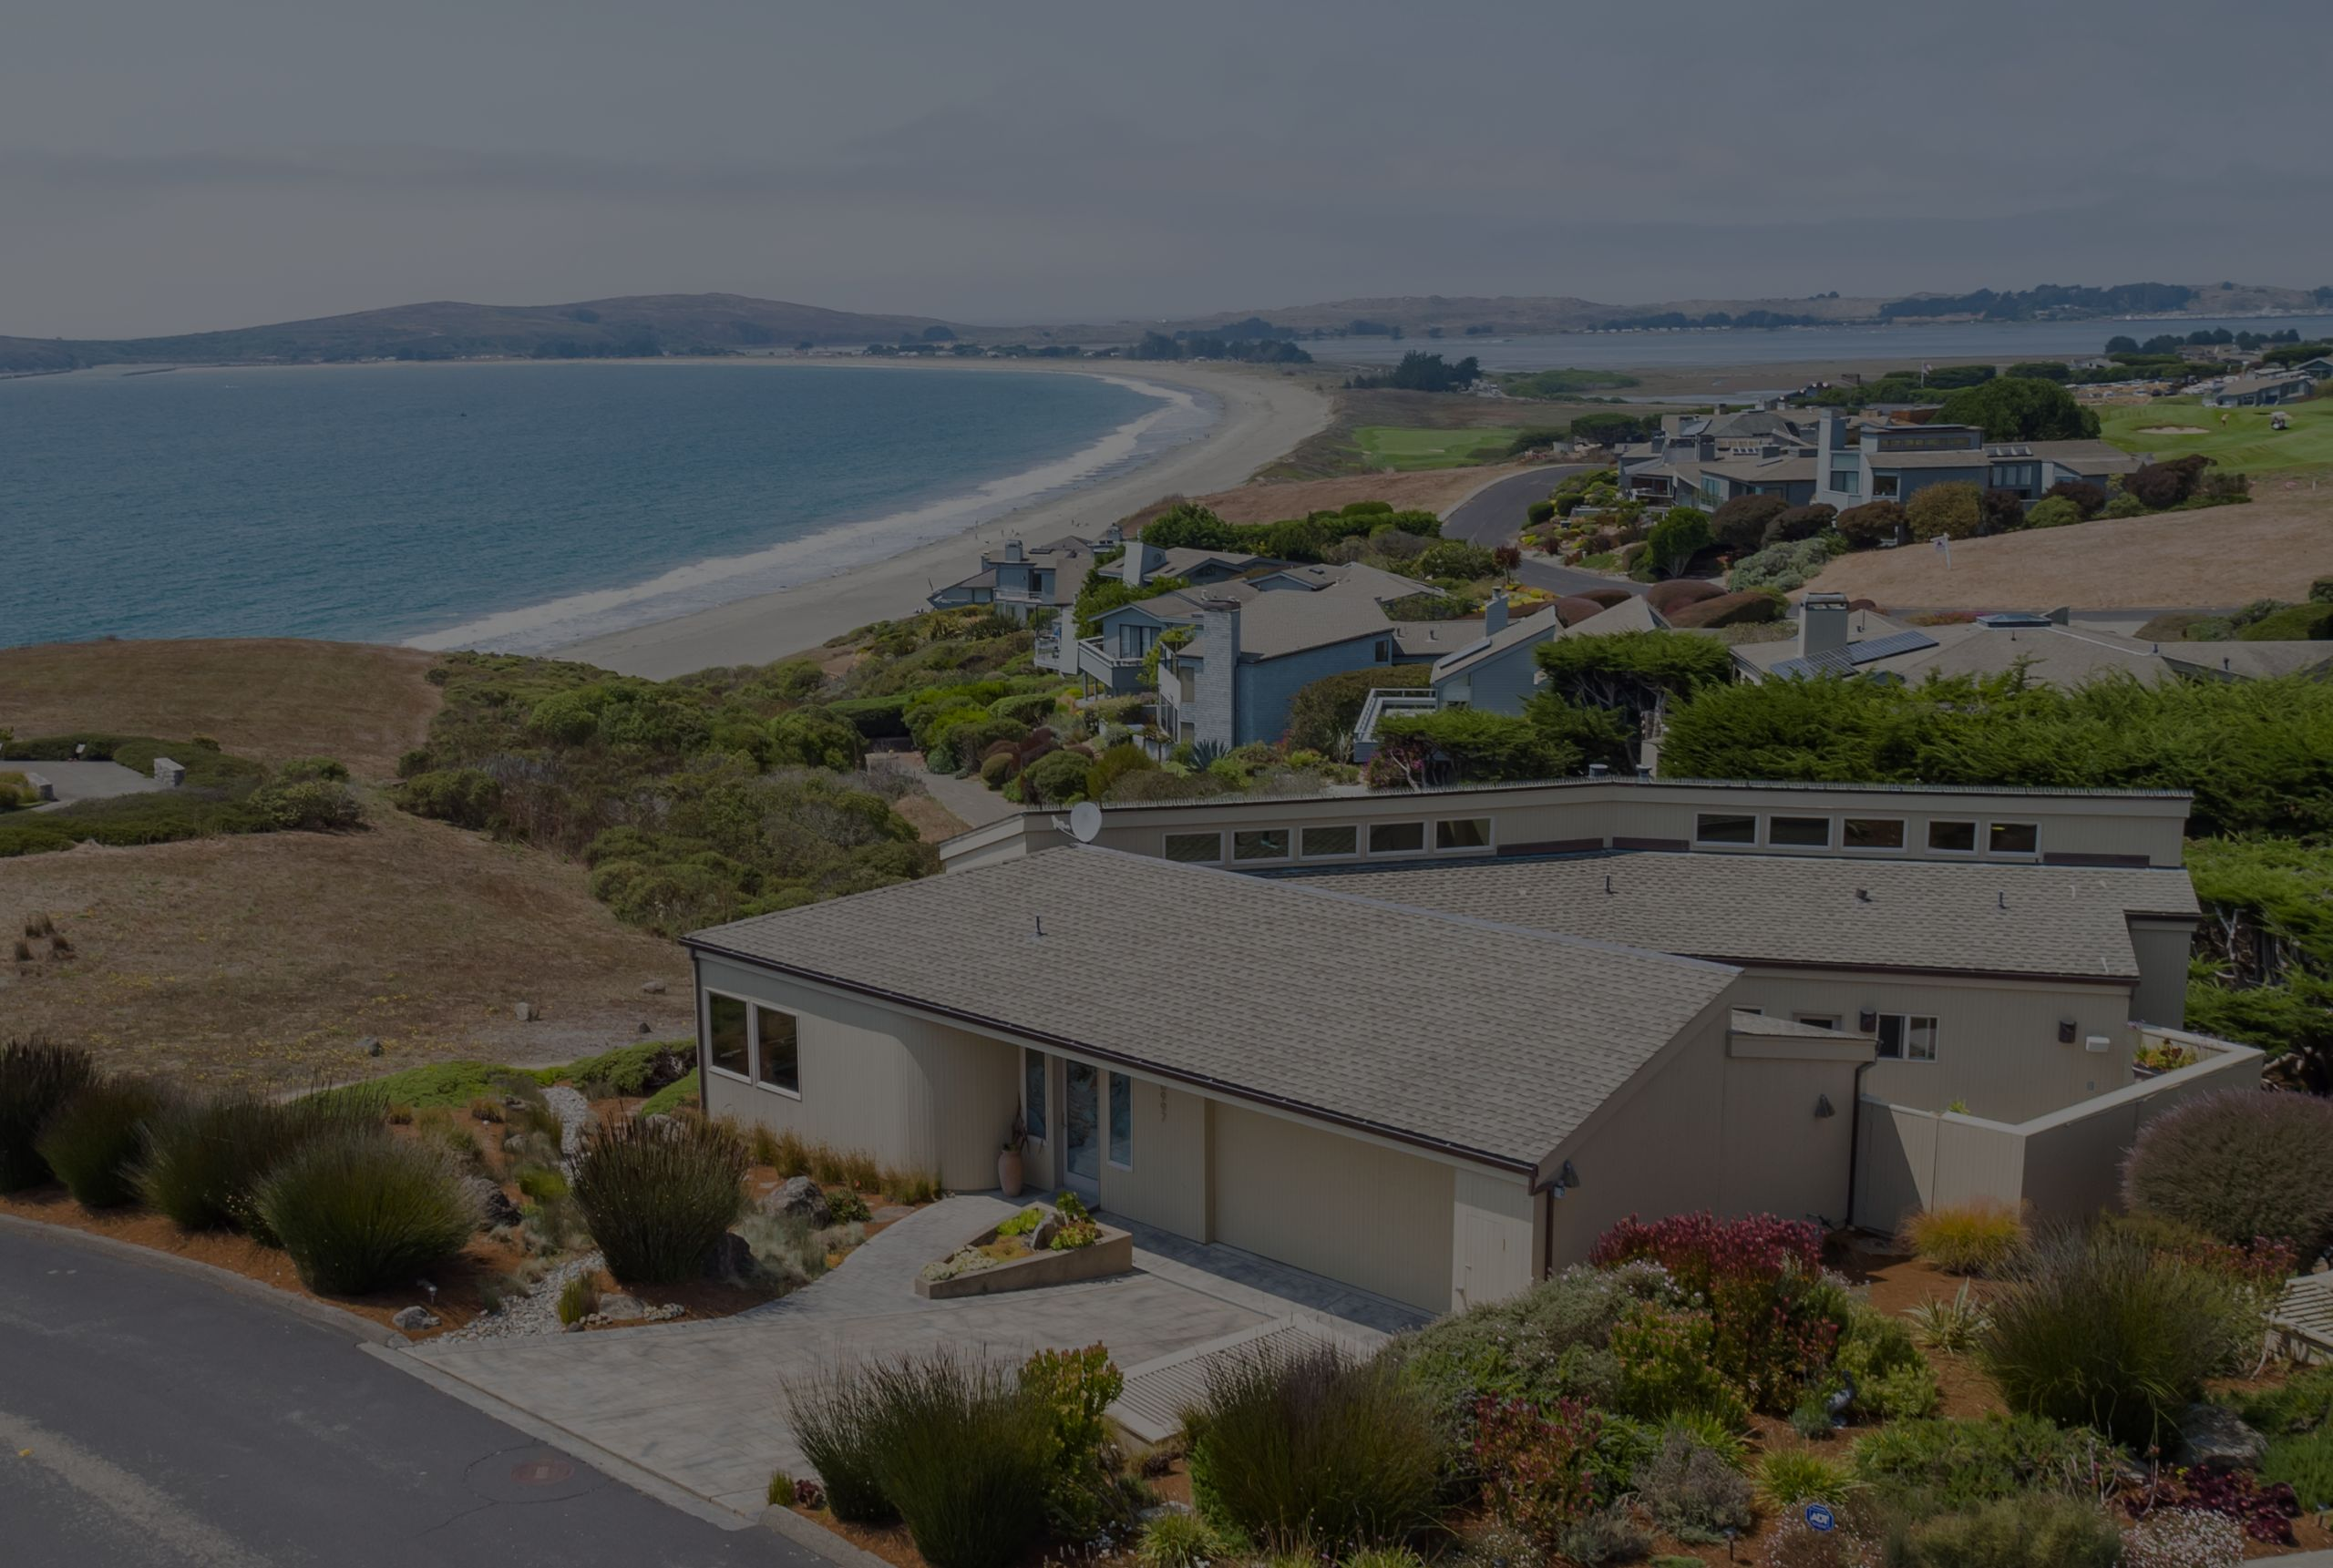 Sold | Bodega Bay Beach House